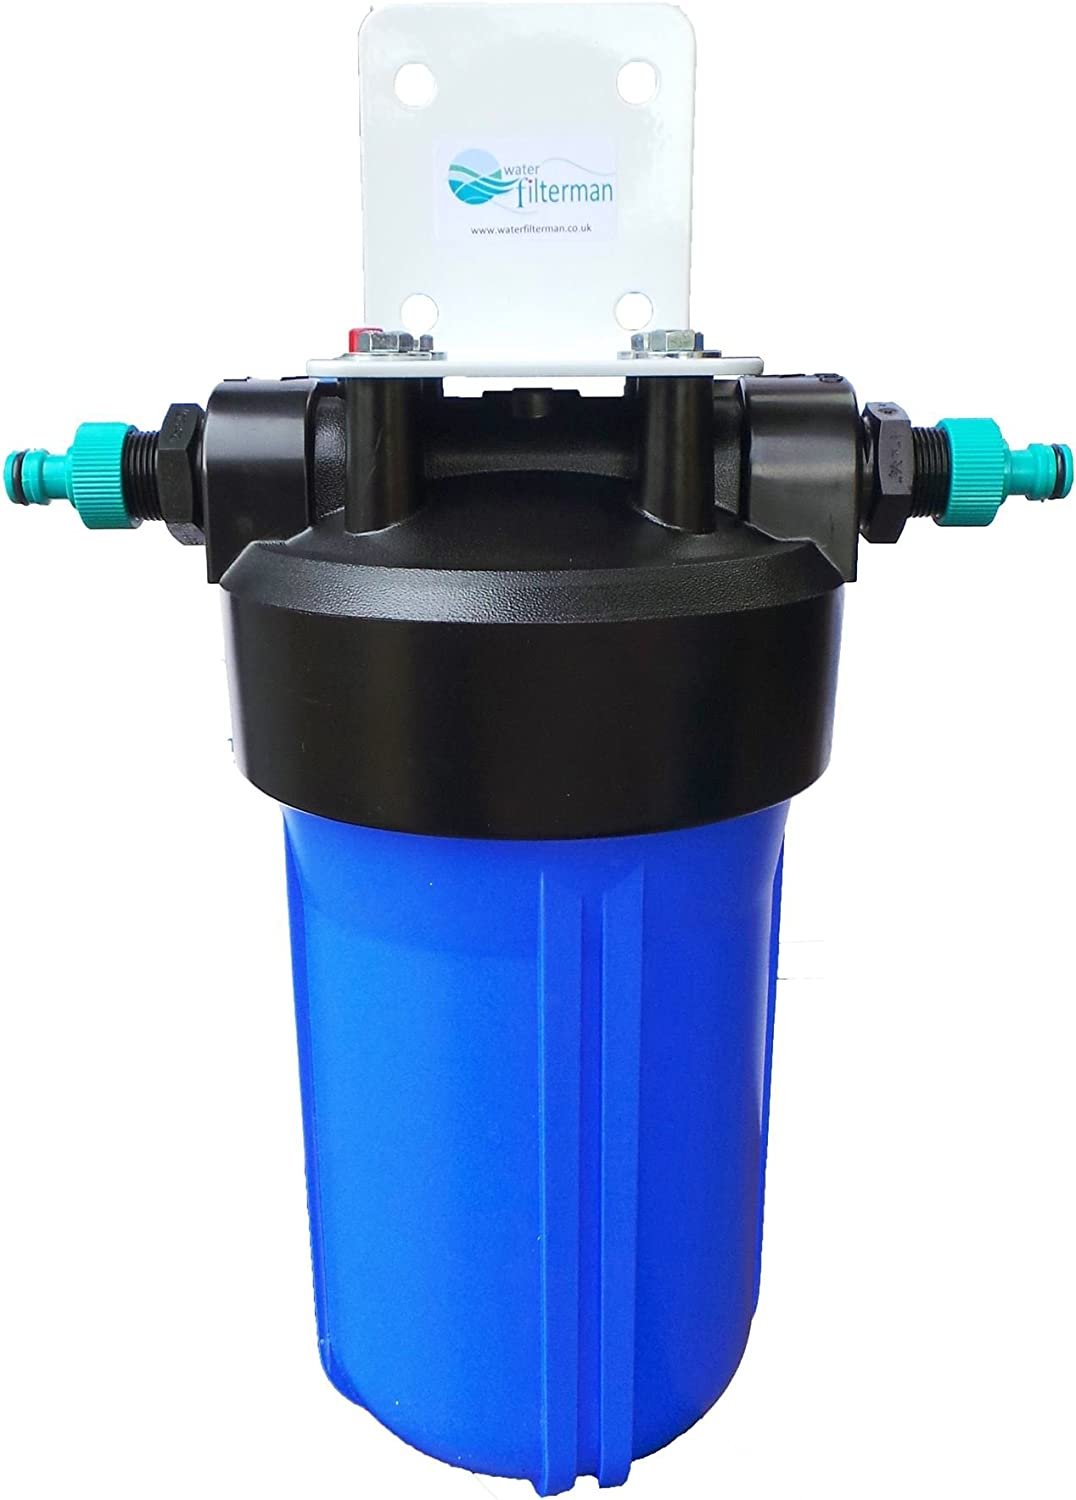 AquaHouse High Capacity Pond Dechlorinator, Chlorine Removal Water Filter for Fish Ponds for reducing Chlorine and Chemicals in tap Water